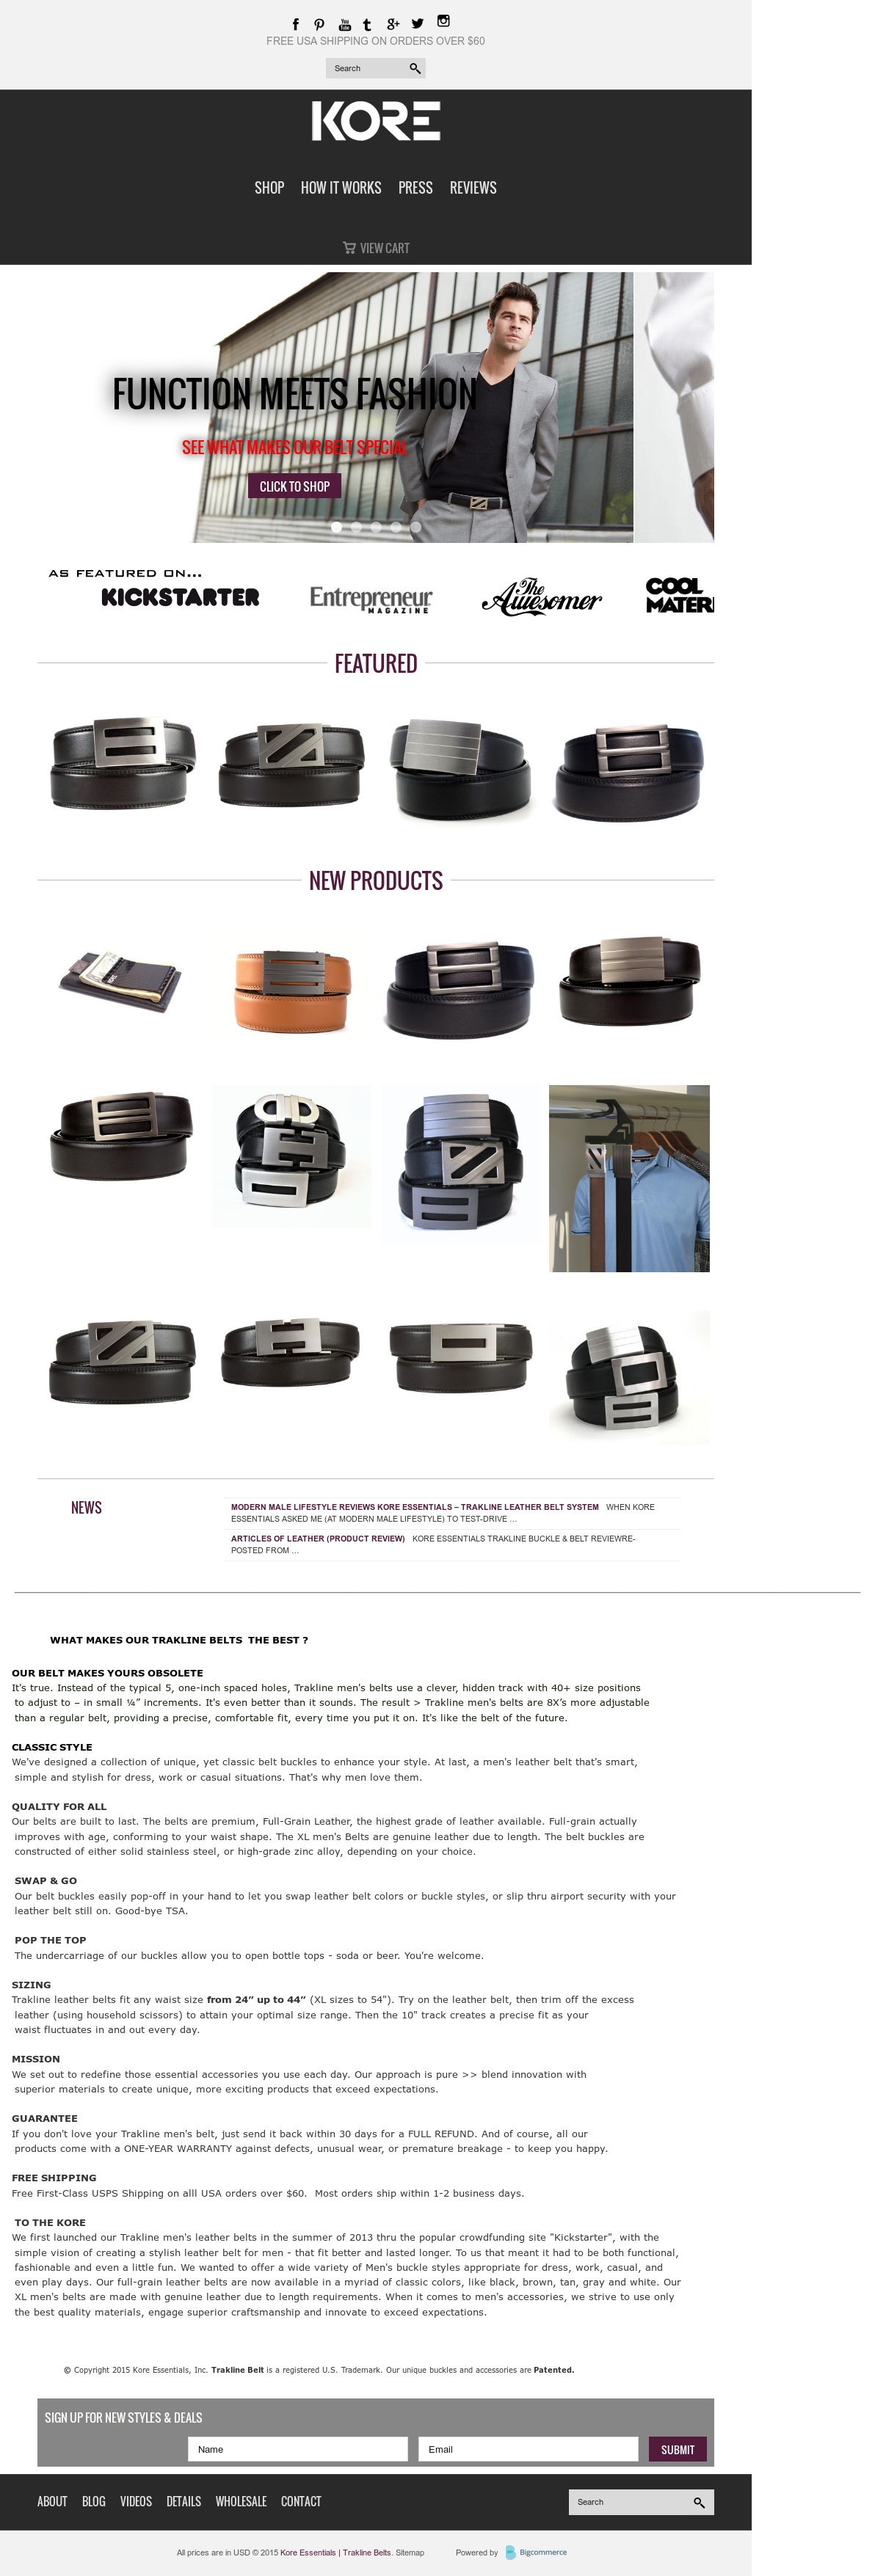 Kore Essentials S Competitors Revenue Number Of Employees Funding Acquisitions News Owler Company Profile Available in full grain & top grain shop kore men's ratchet belts now and save! kore essentials s competitors revenue